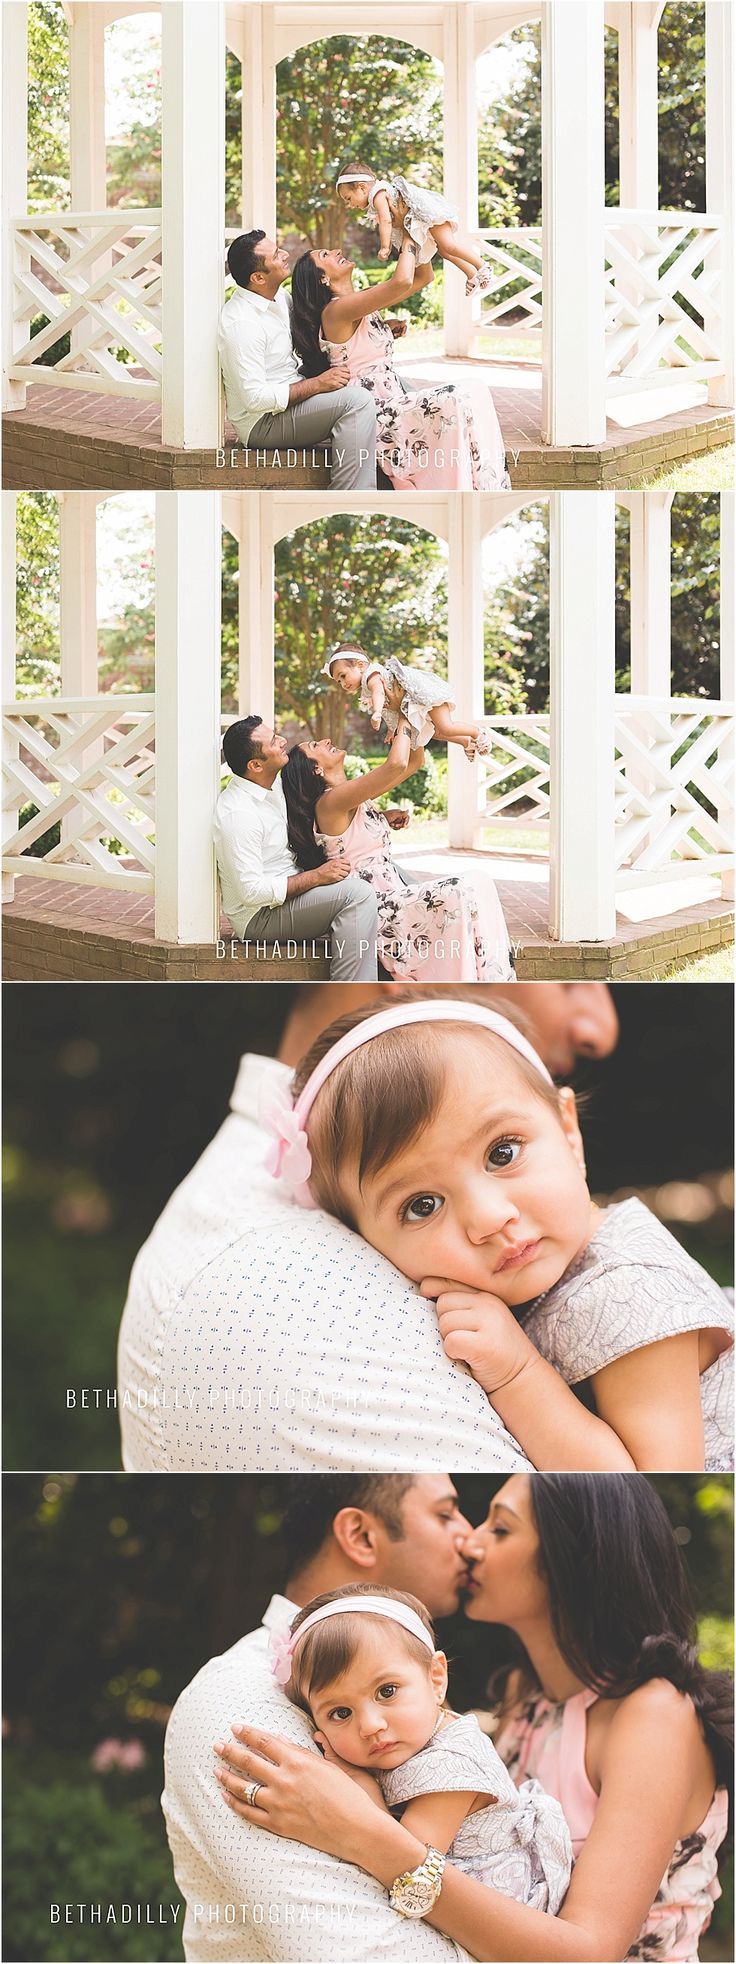 him + her + a darling little girl | northern virginia family photographer » beth a-dilly photography | Alexandria VA, Fairfax VA, DC | Family, Children, Maternity, Engagement Photographer